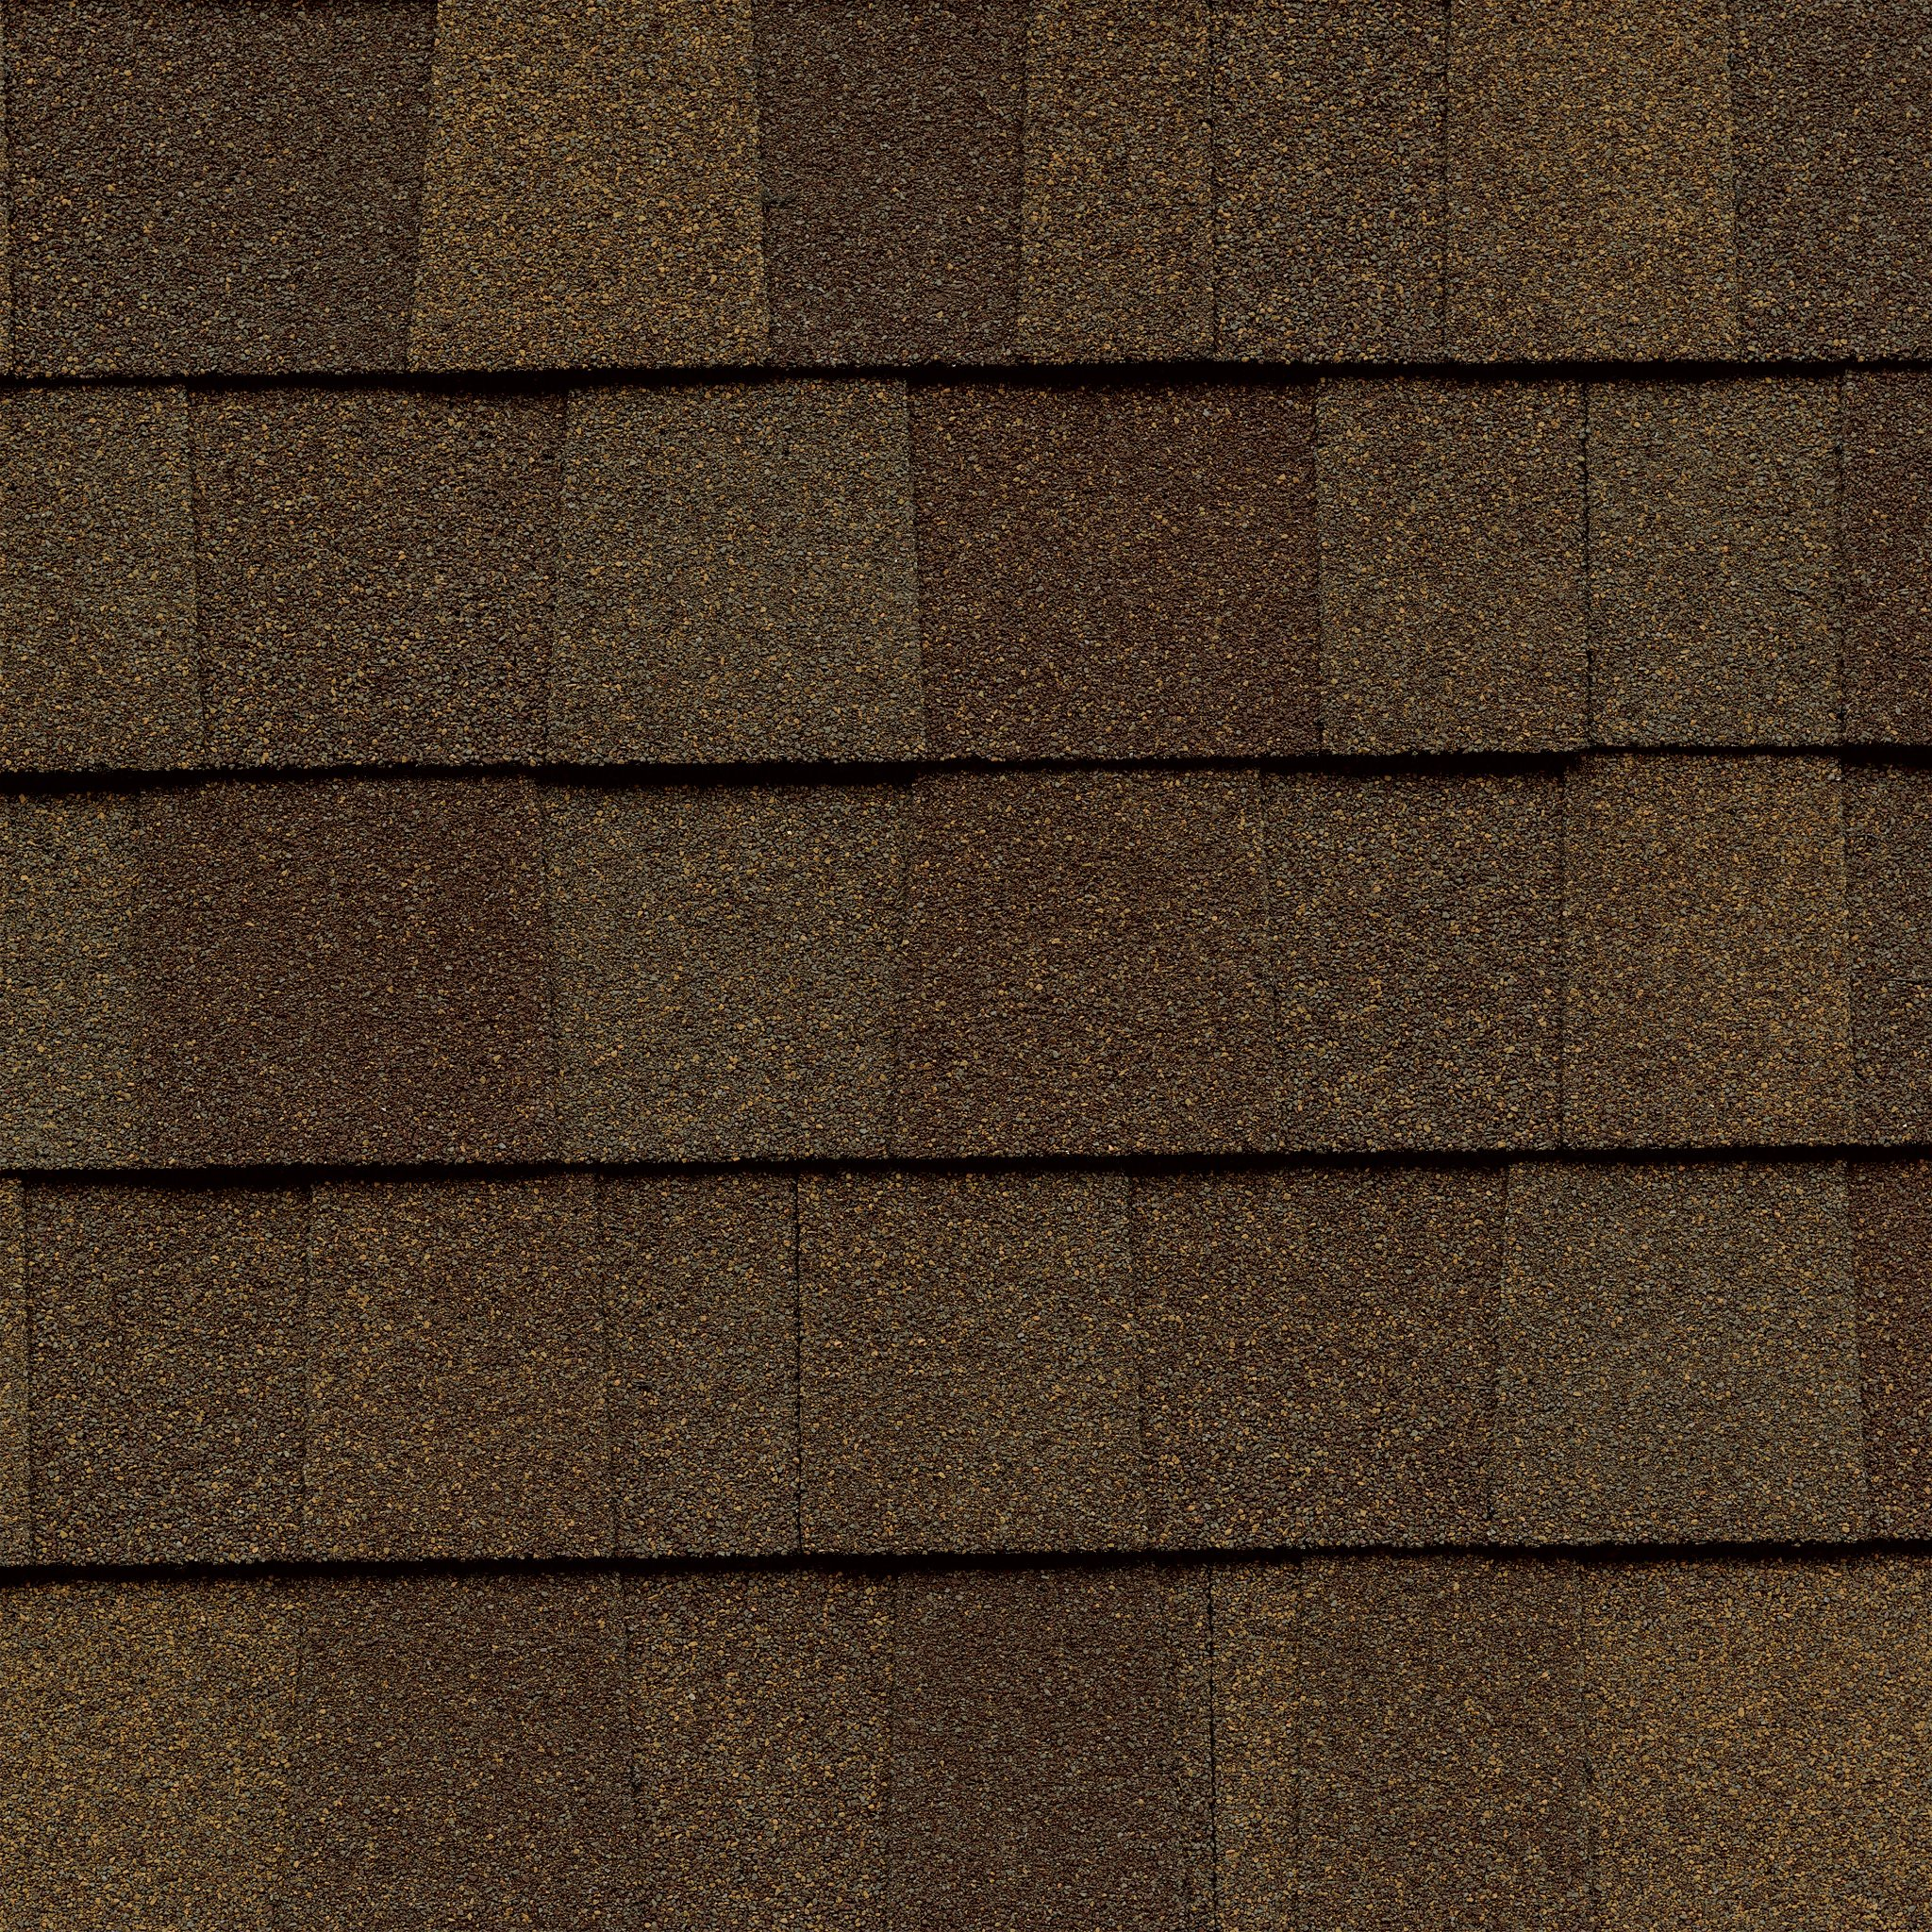 Close up photo of GAF's Timberline American Harvest Adobe Sunset shingle swatch